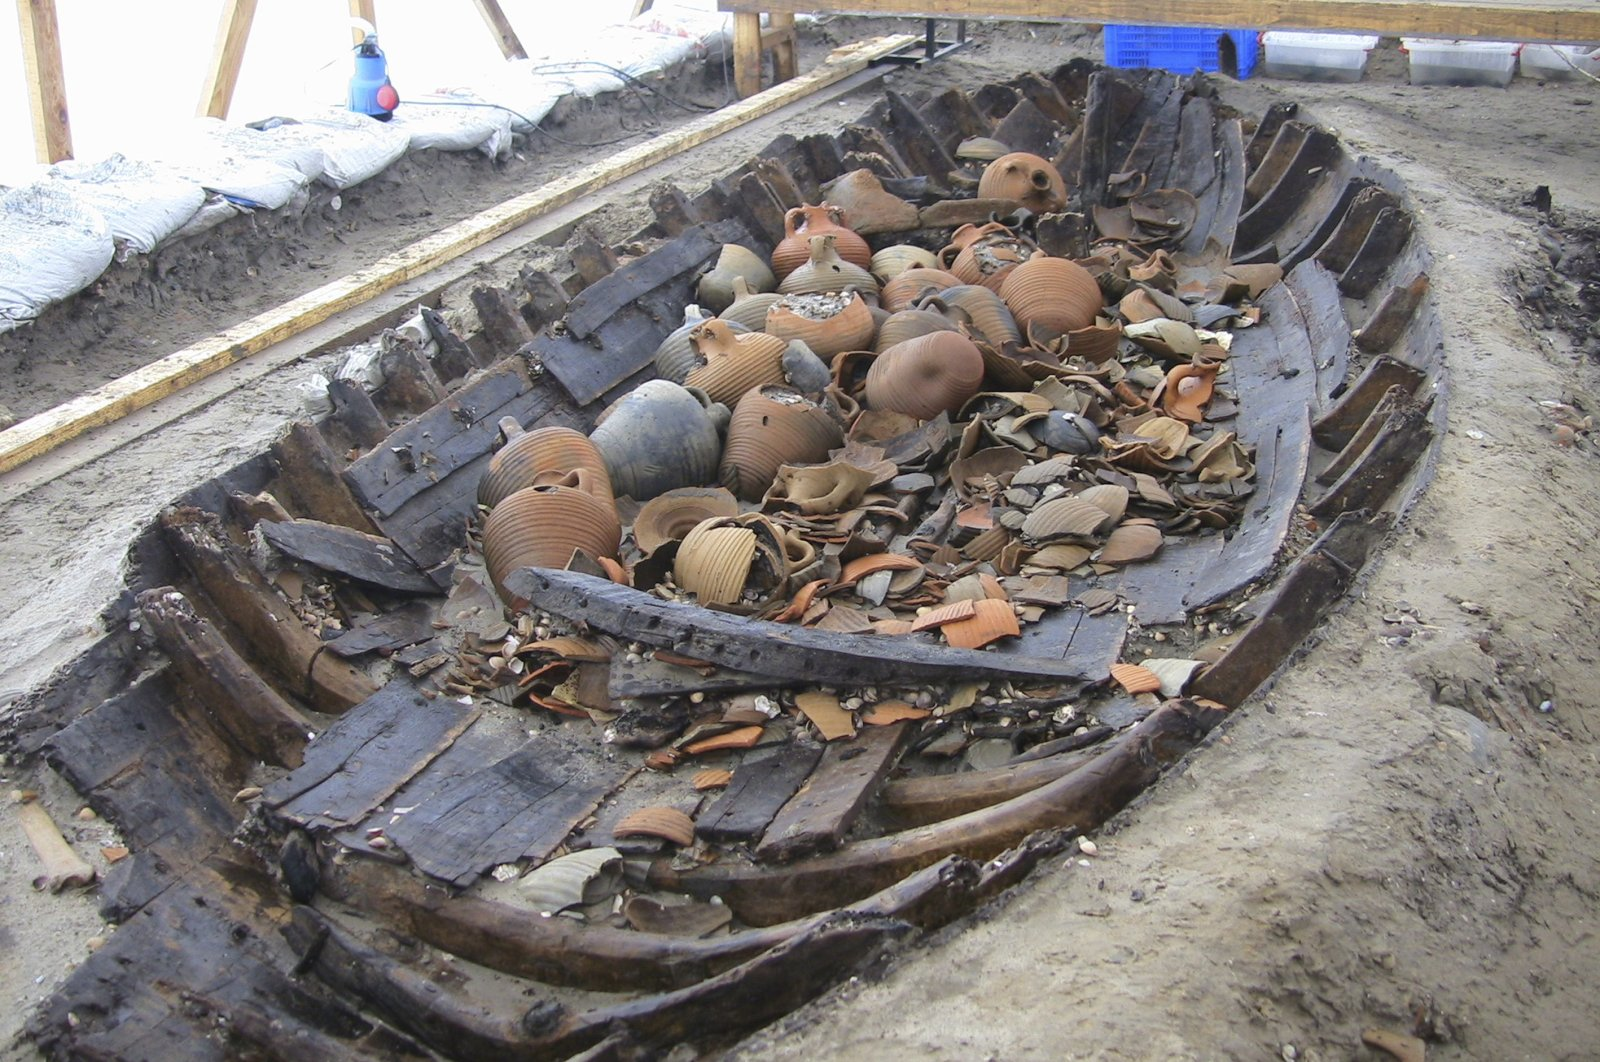 Remains of a ship and potteries found in Yenikapı, Istanbul, Turkey. (AA Photo)